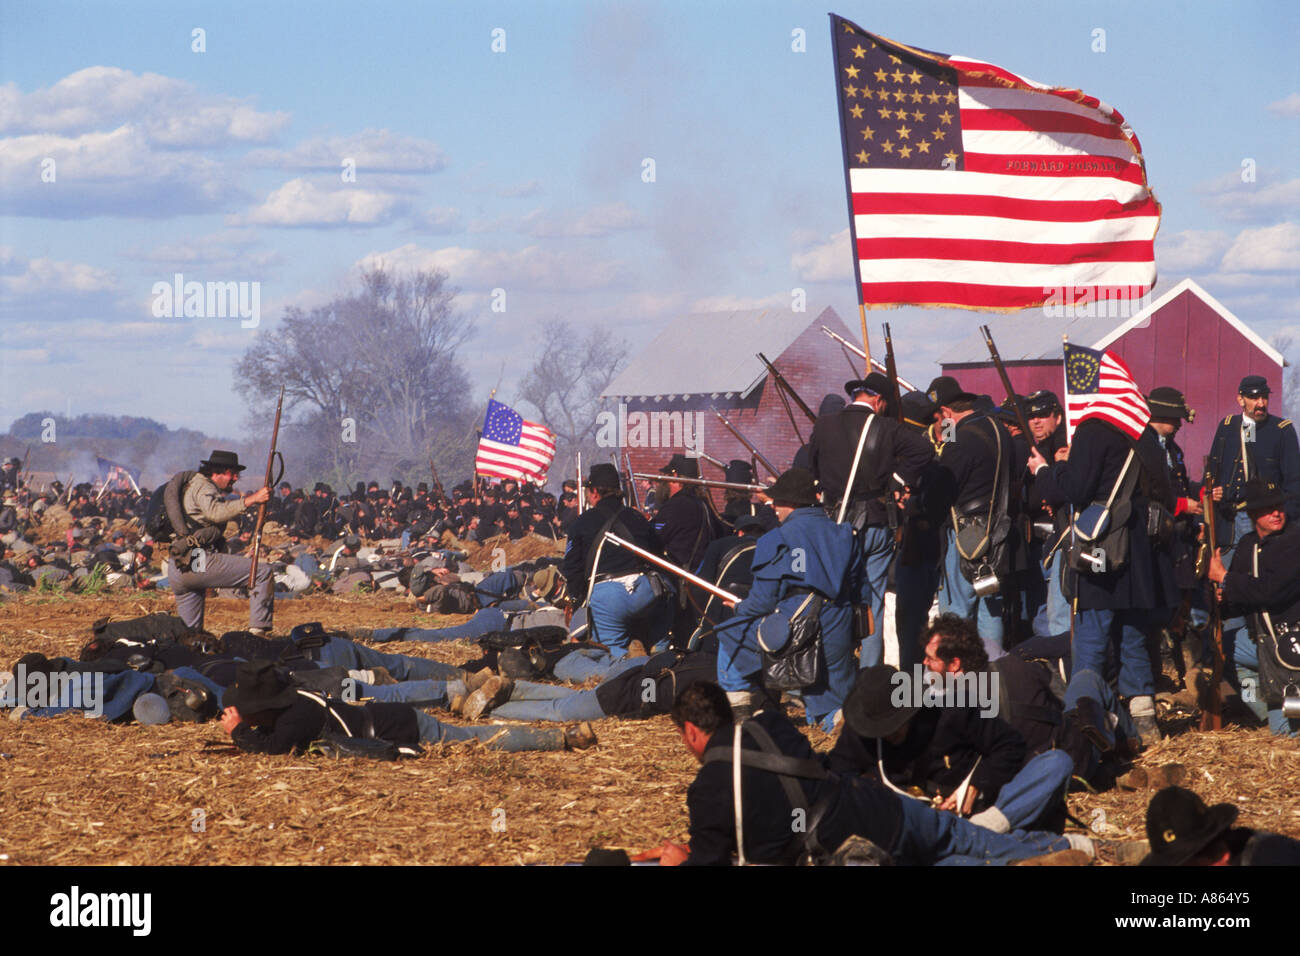 an analysis of the union and confederate soldiers The civil war summary big picture analysis  and asked congress for 500,000 soldiers  winning victory after victory over poorly-led union forces, confederate.